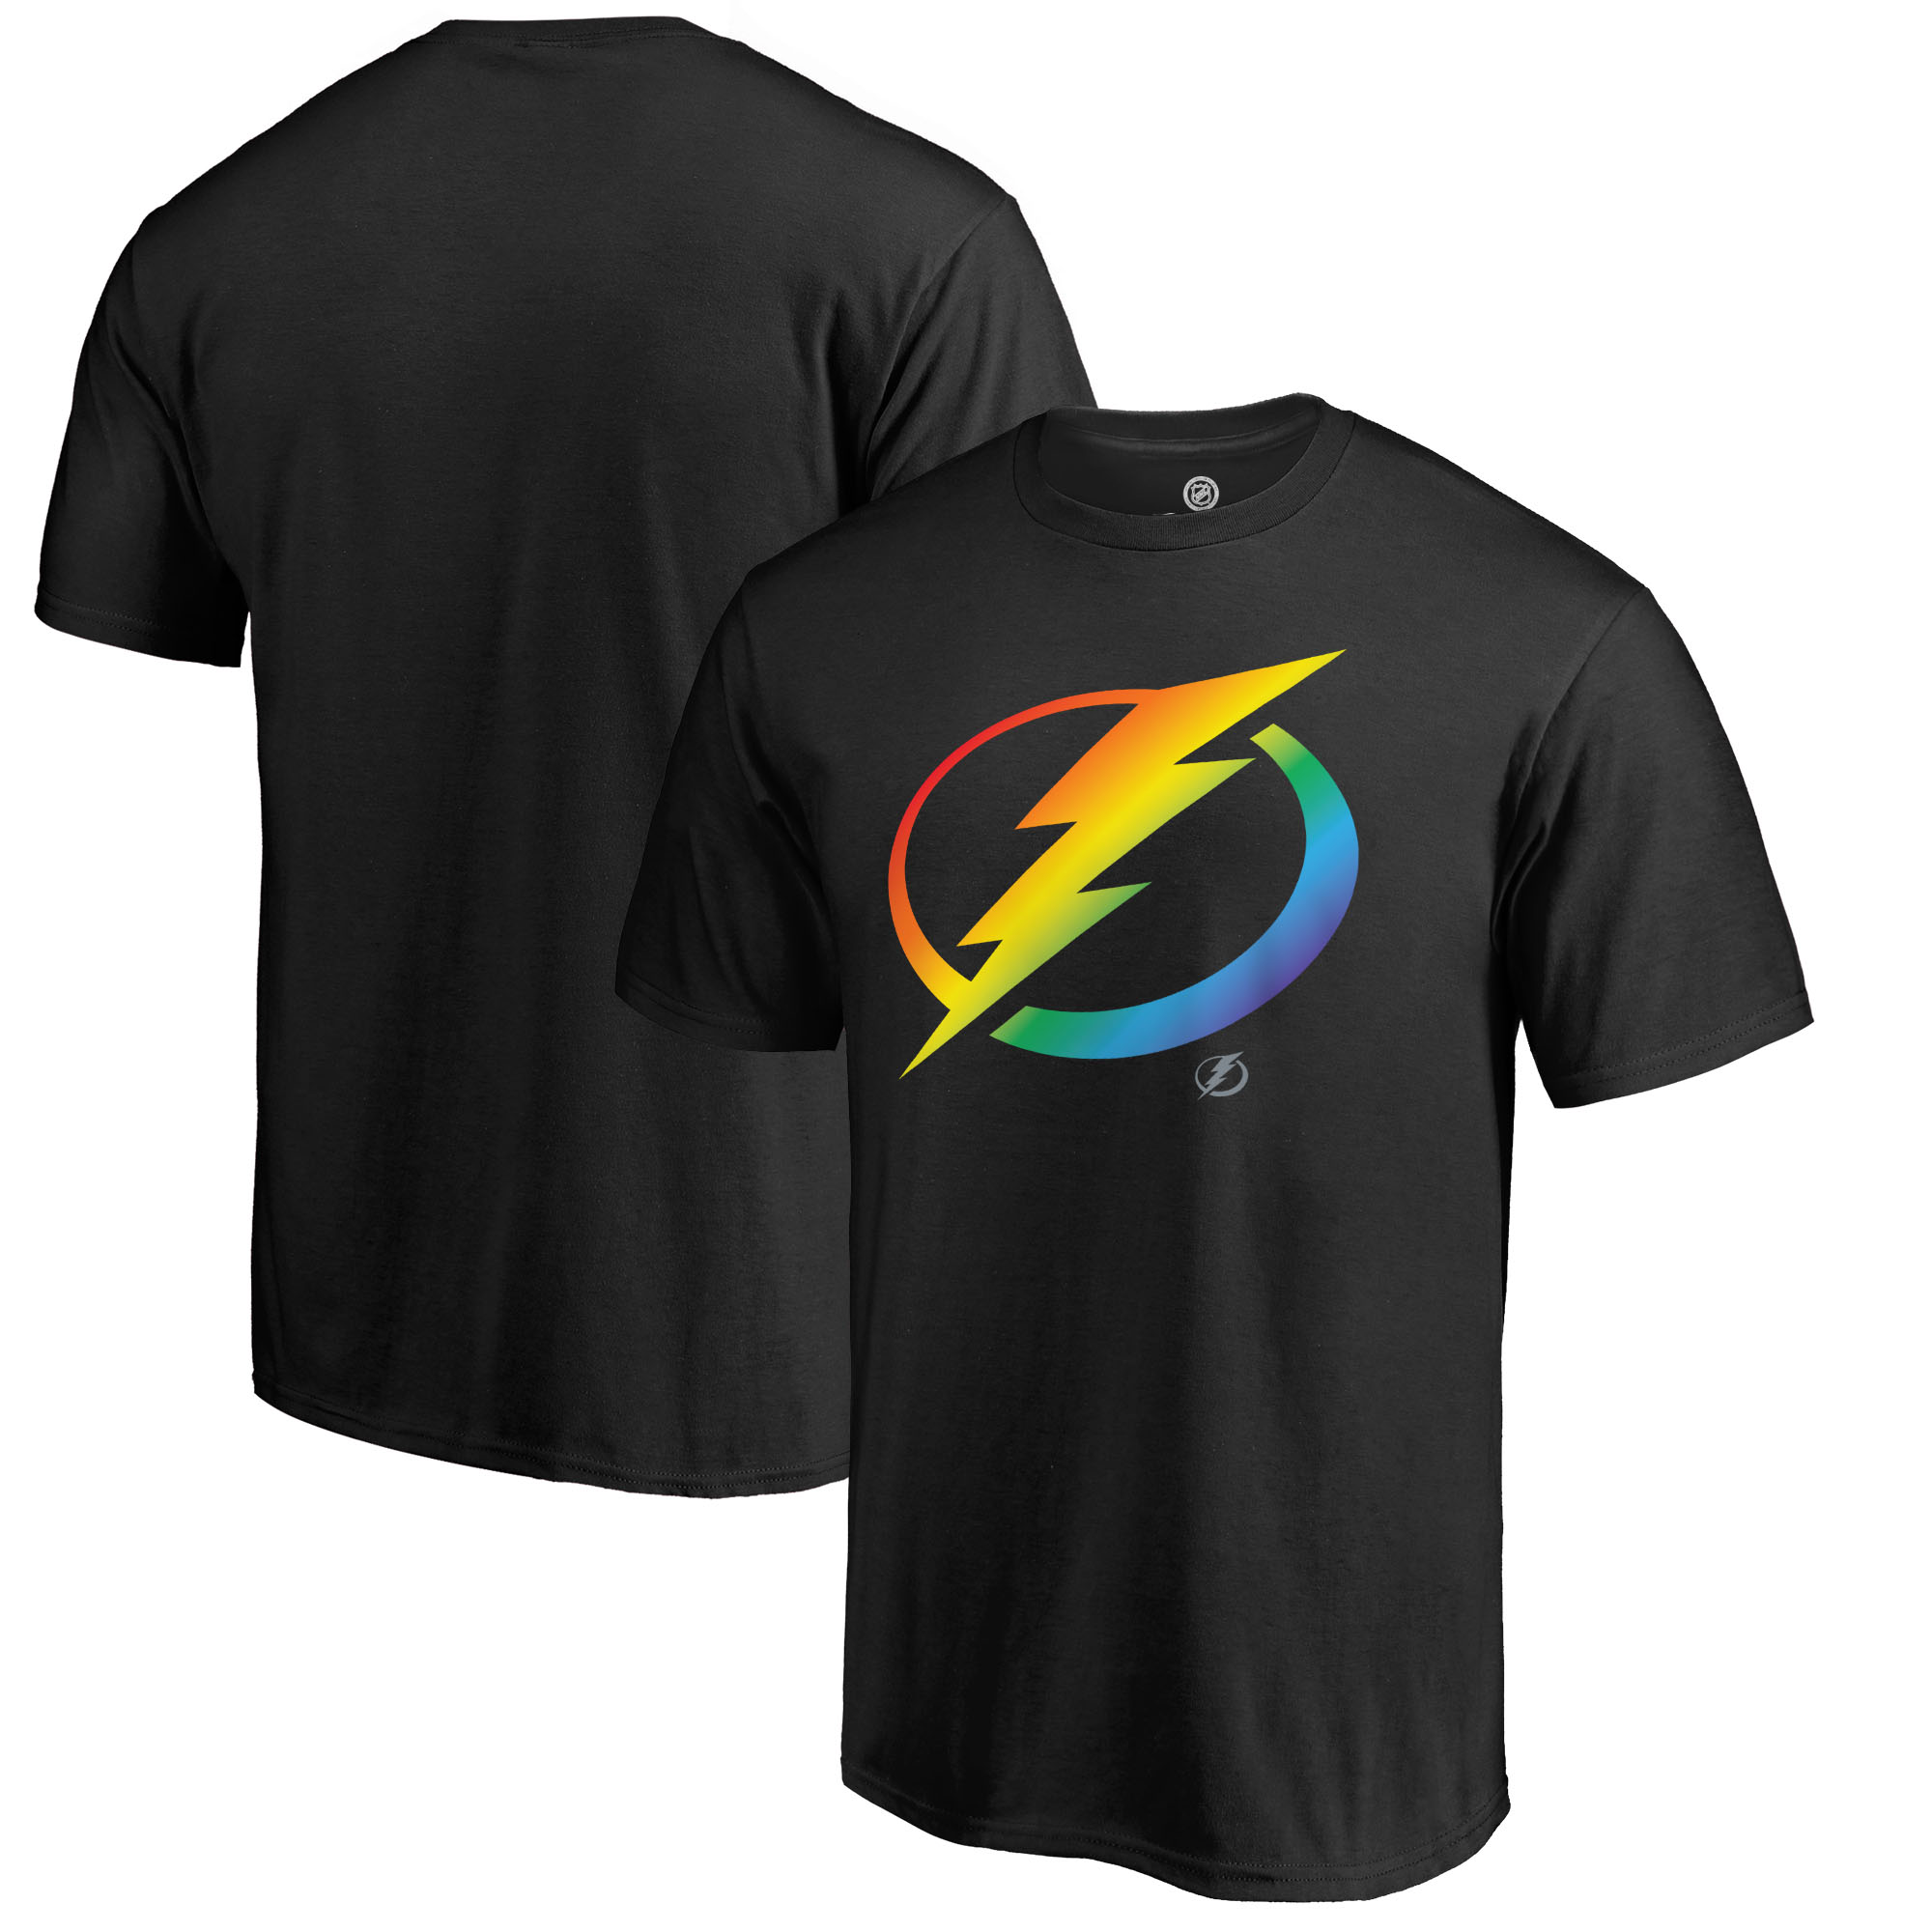 Men's Fanatics Branded Black Tampa Bay Lightning Rainbow Pride Logo T-Shirt